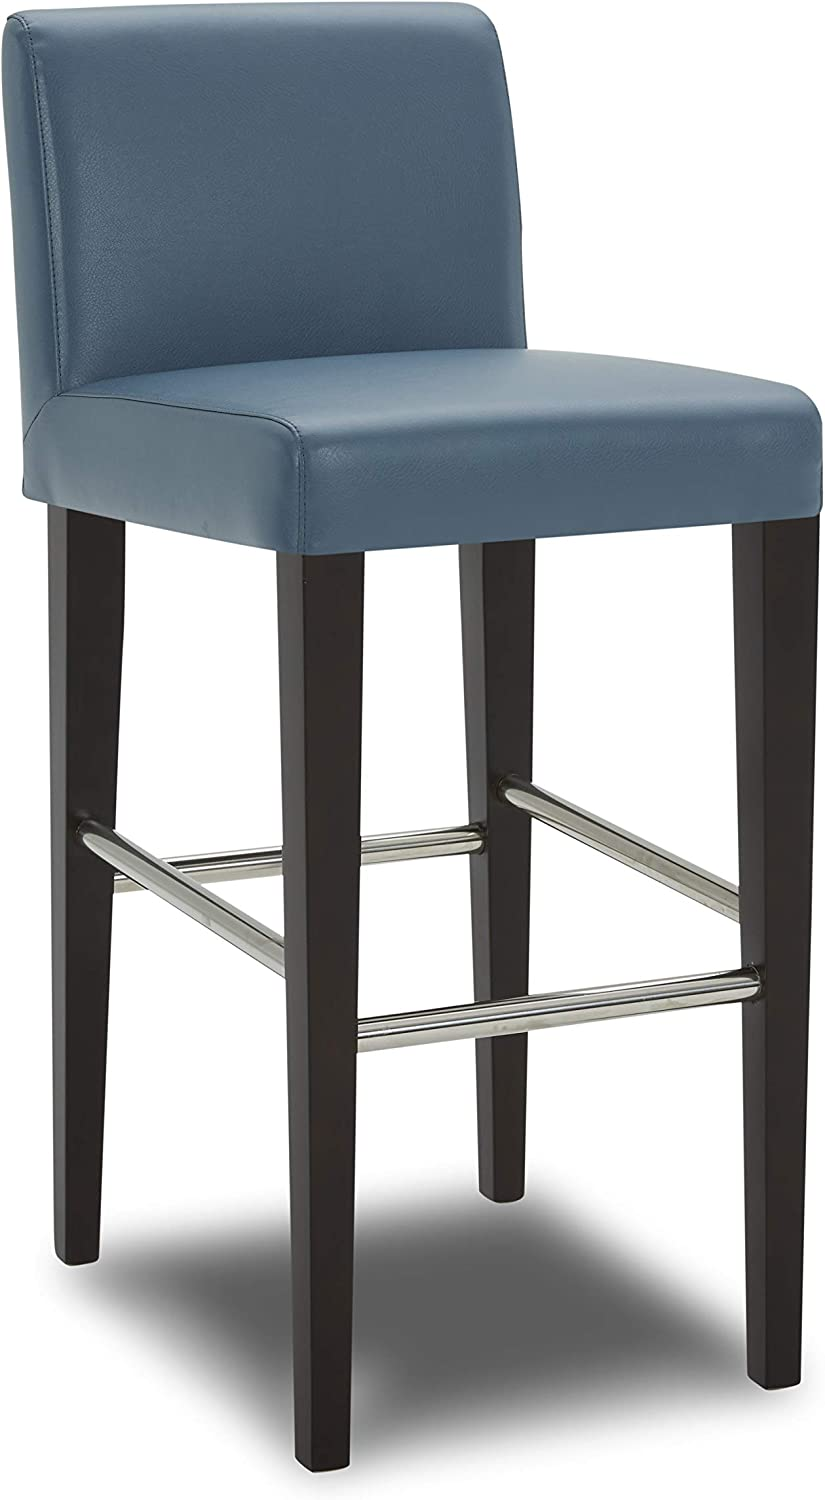 CHITA Bar Height Shipping included Bartool Upholstered Faux Leather shipfree 30 Stool